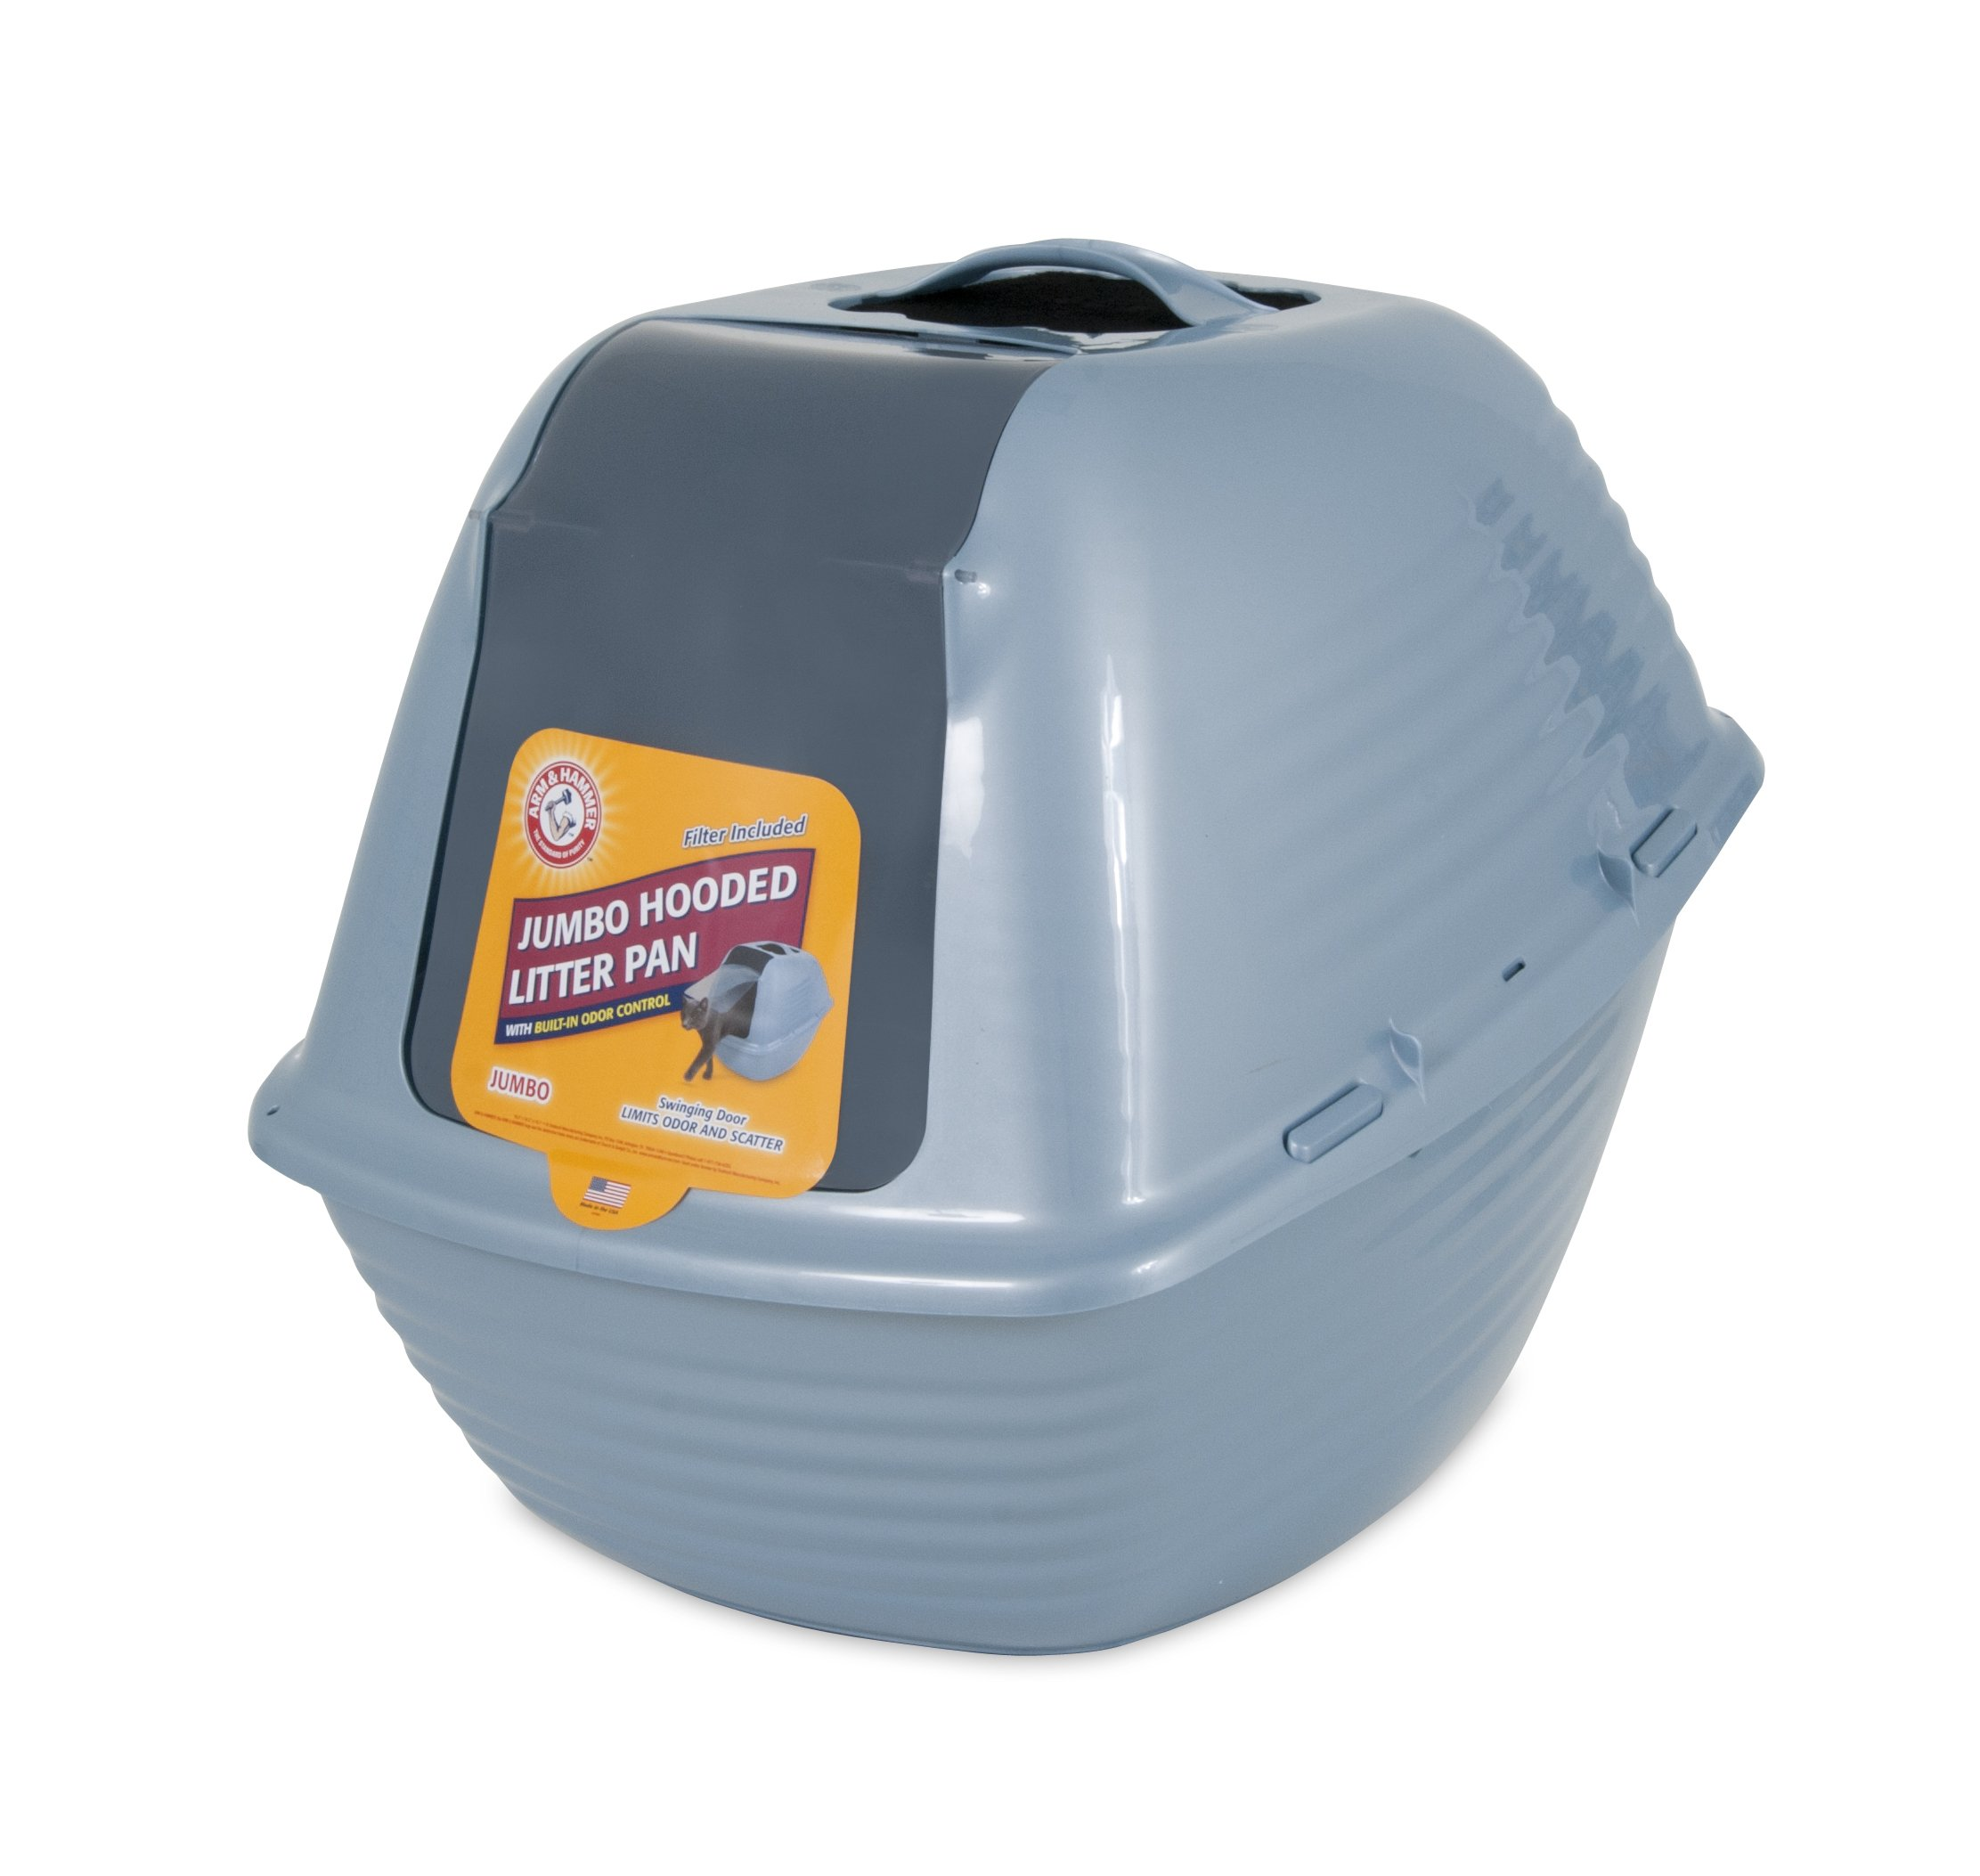 Arm & Hammer 22099 Hooded Litter Pan, Jumbo, Blue